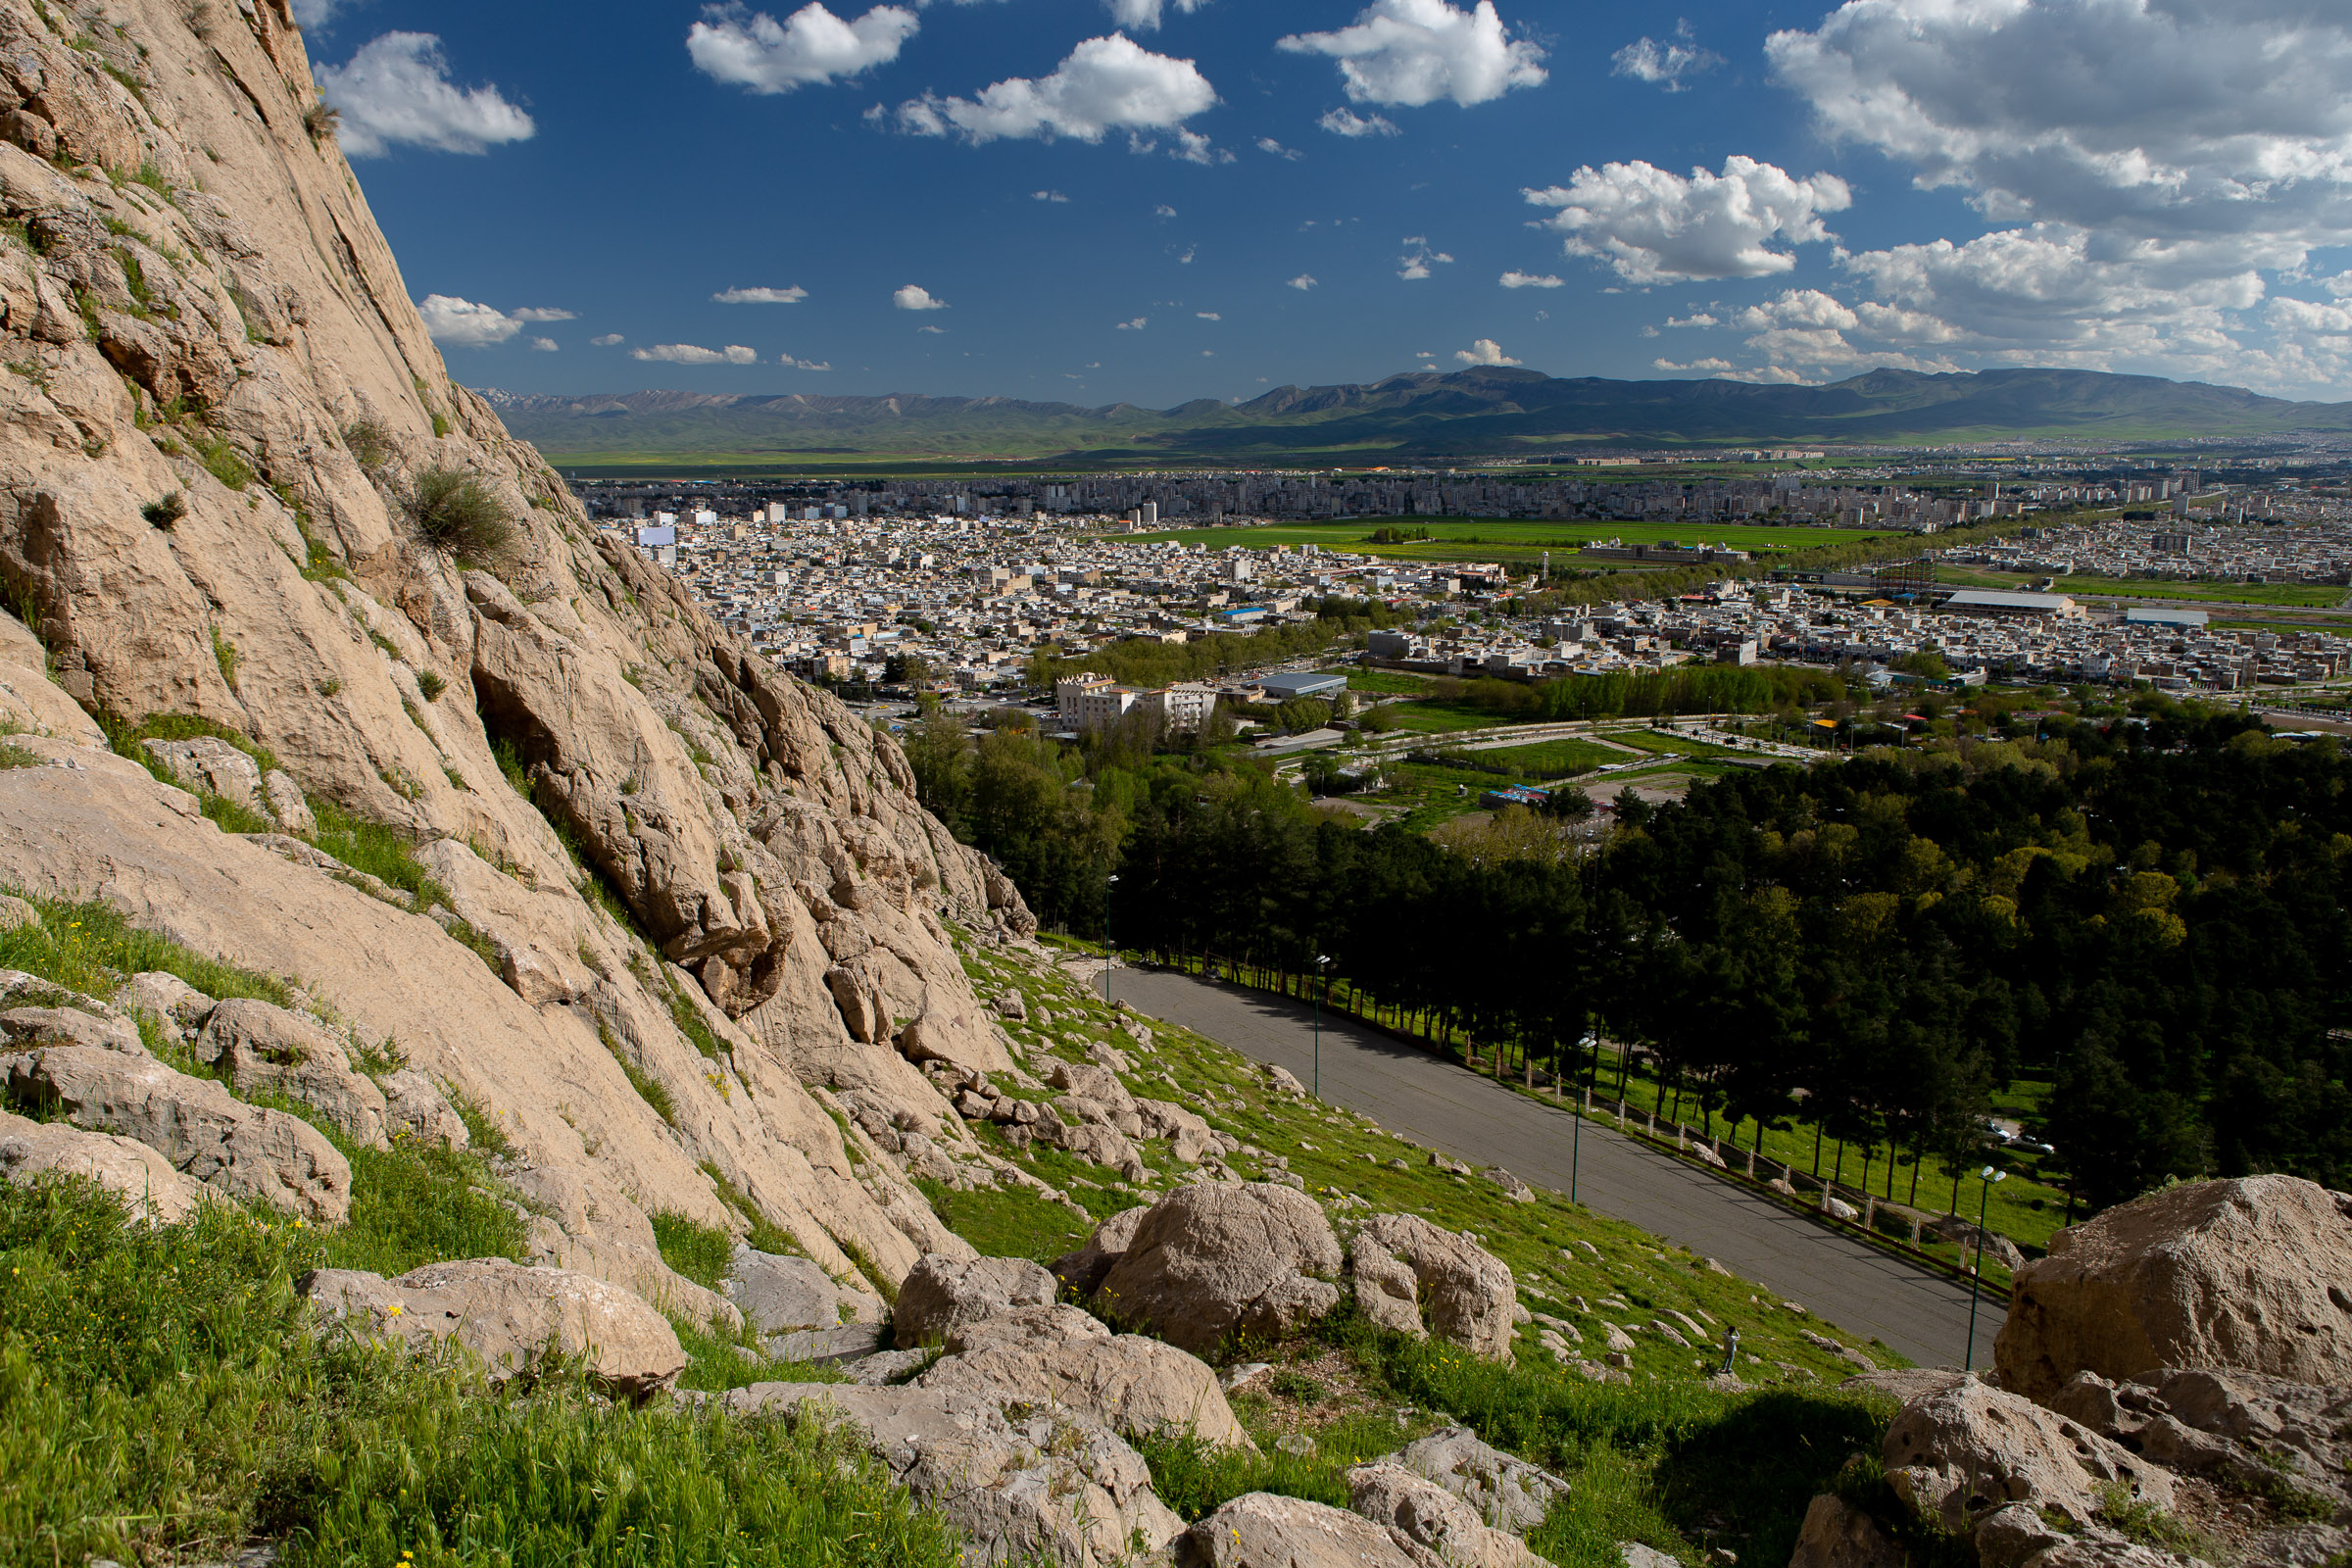 The view over Kermanshah from the foothills around the Taq-e Bostan.